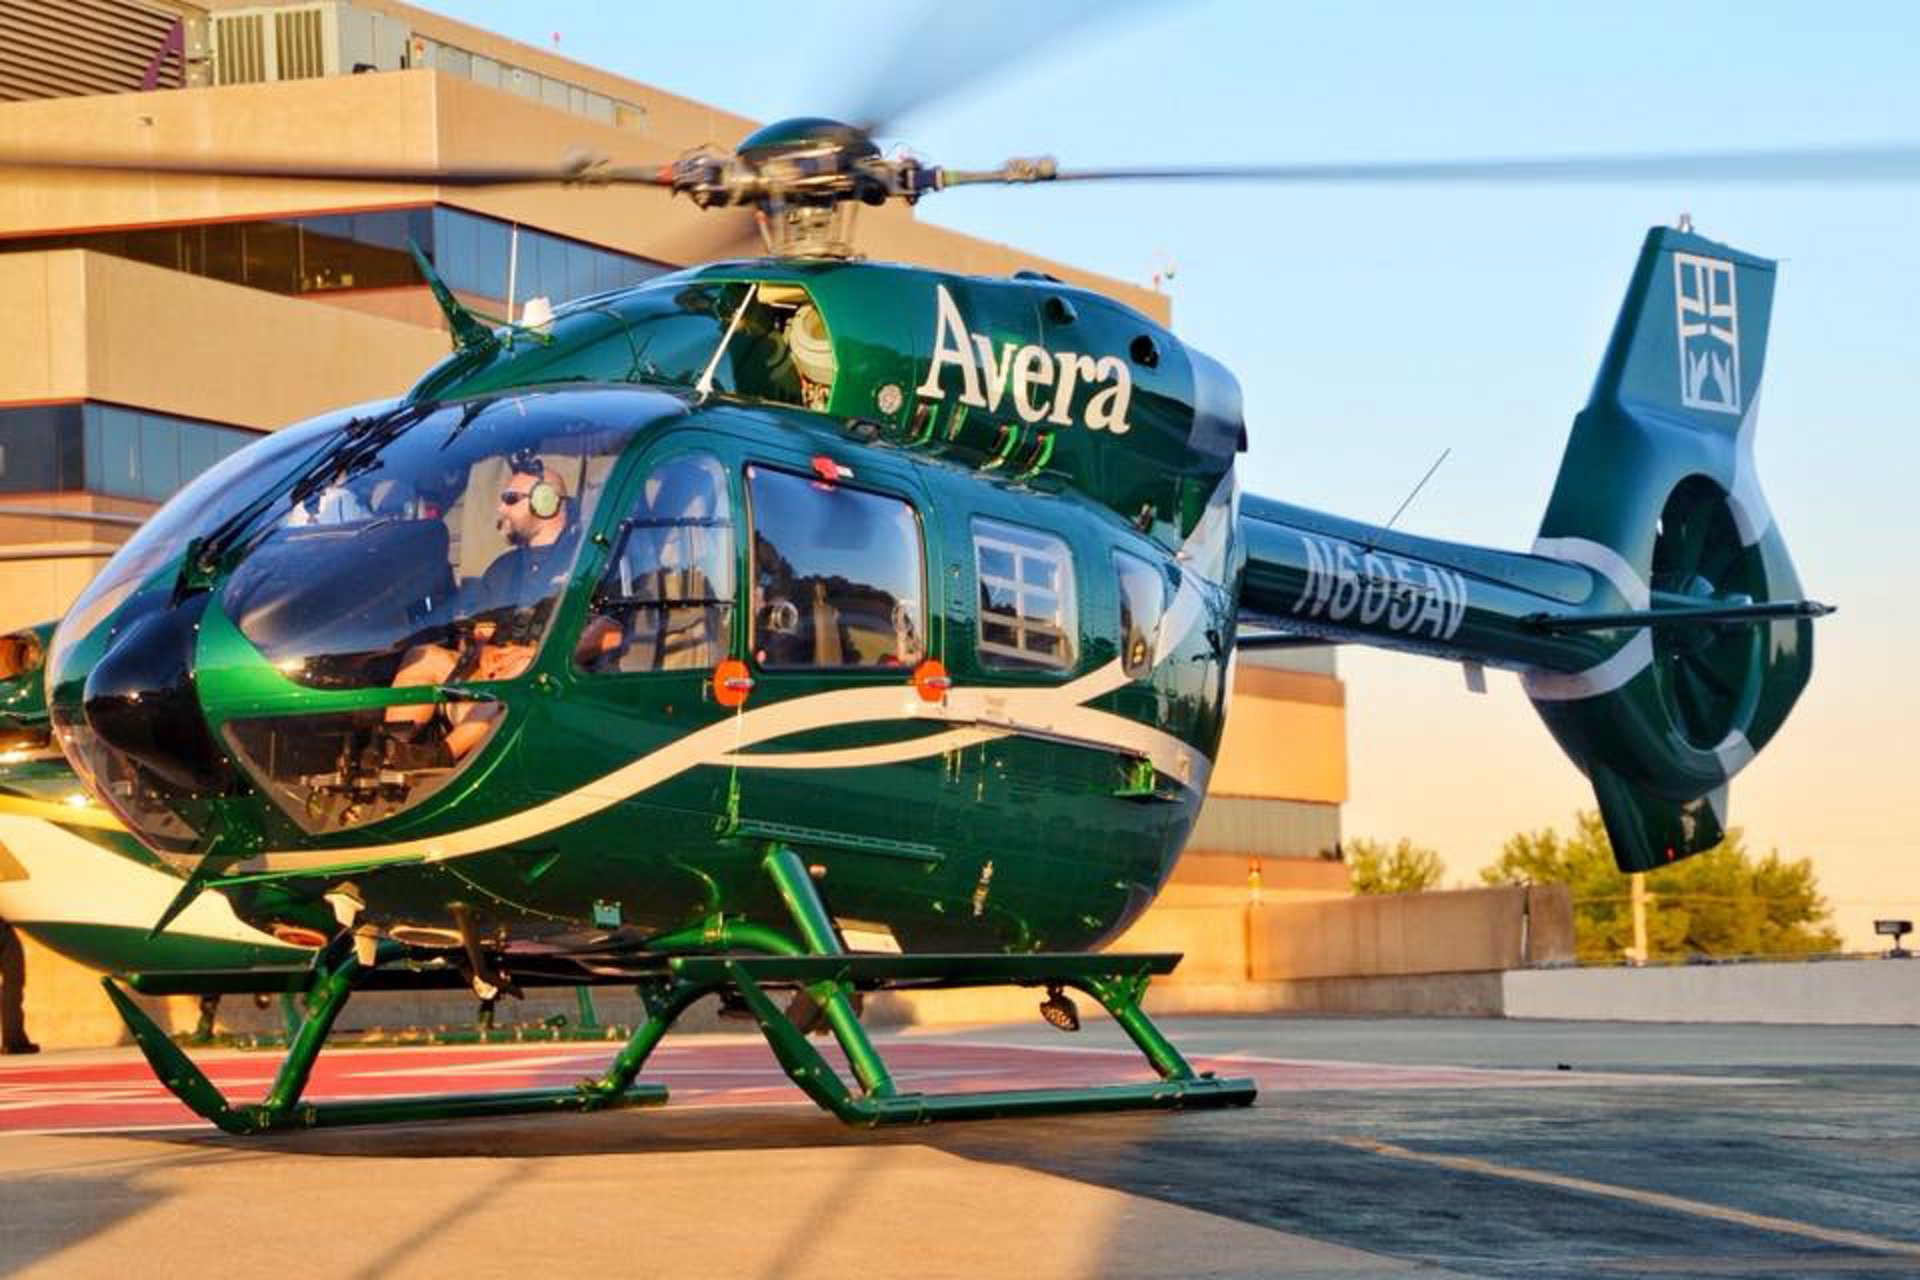 The featured H145 at the Air Medical Transport Conference (AMTC) on Oct. 22-24 in Phoenix, Arizona is the third aircraft from the proven H145 family to be operated by Avera McKennan Hospital and University Health Center, a South Dakota-based integrated health system offering the Careflight service.